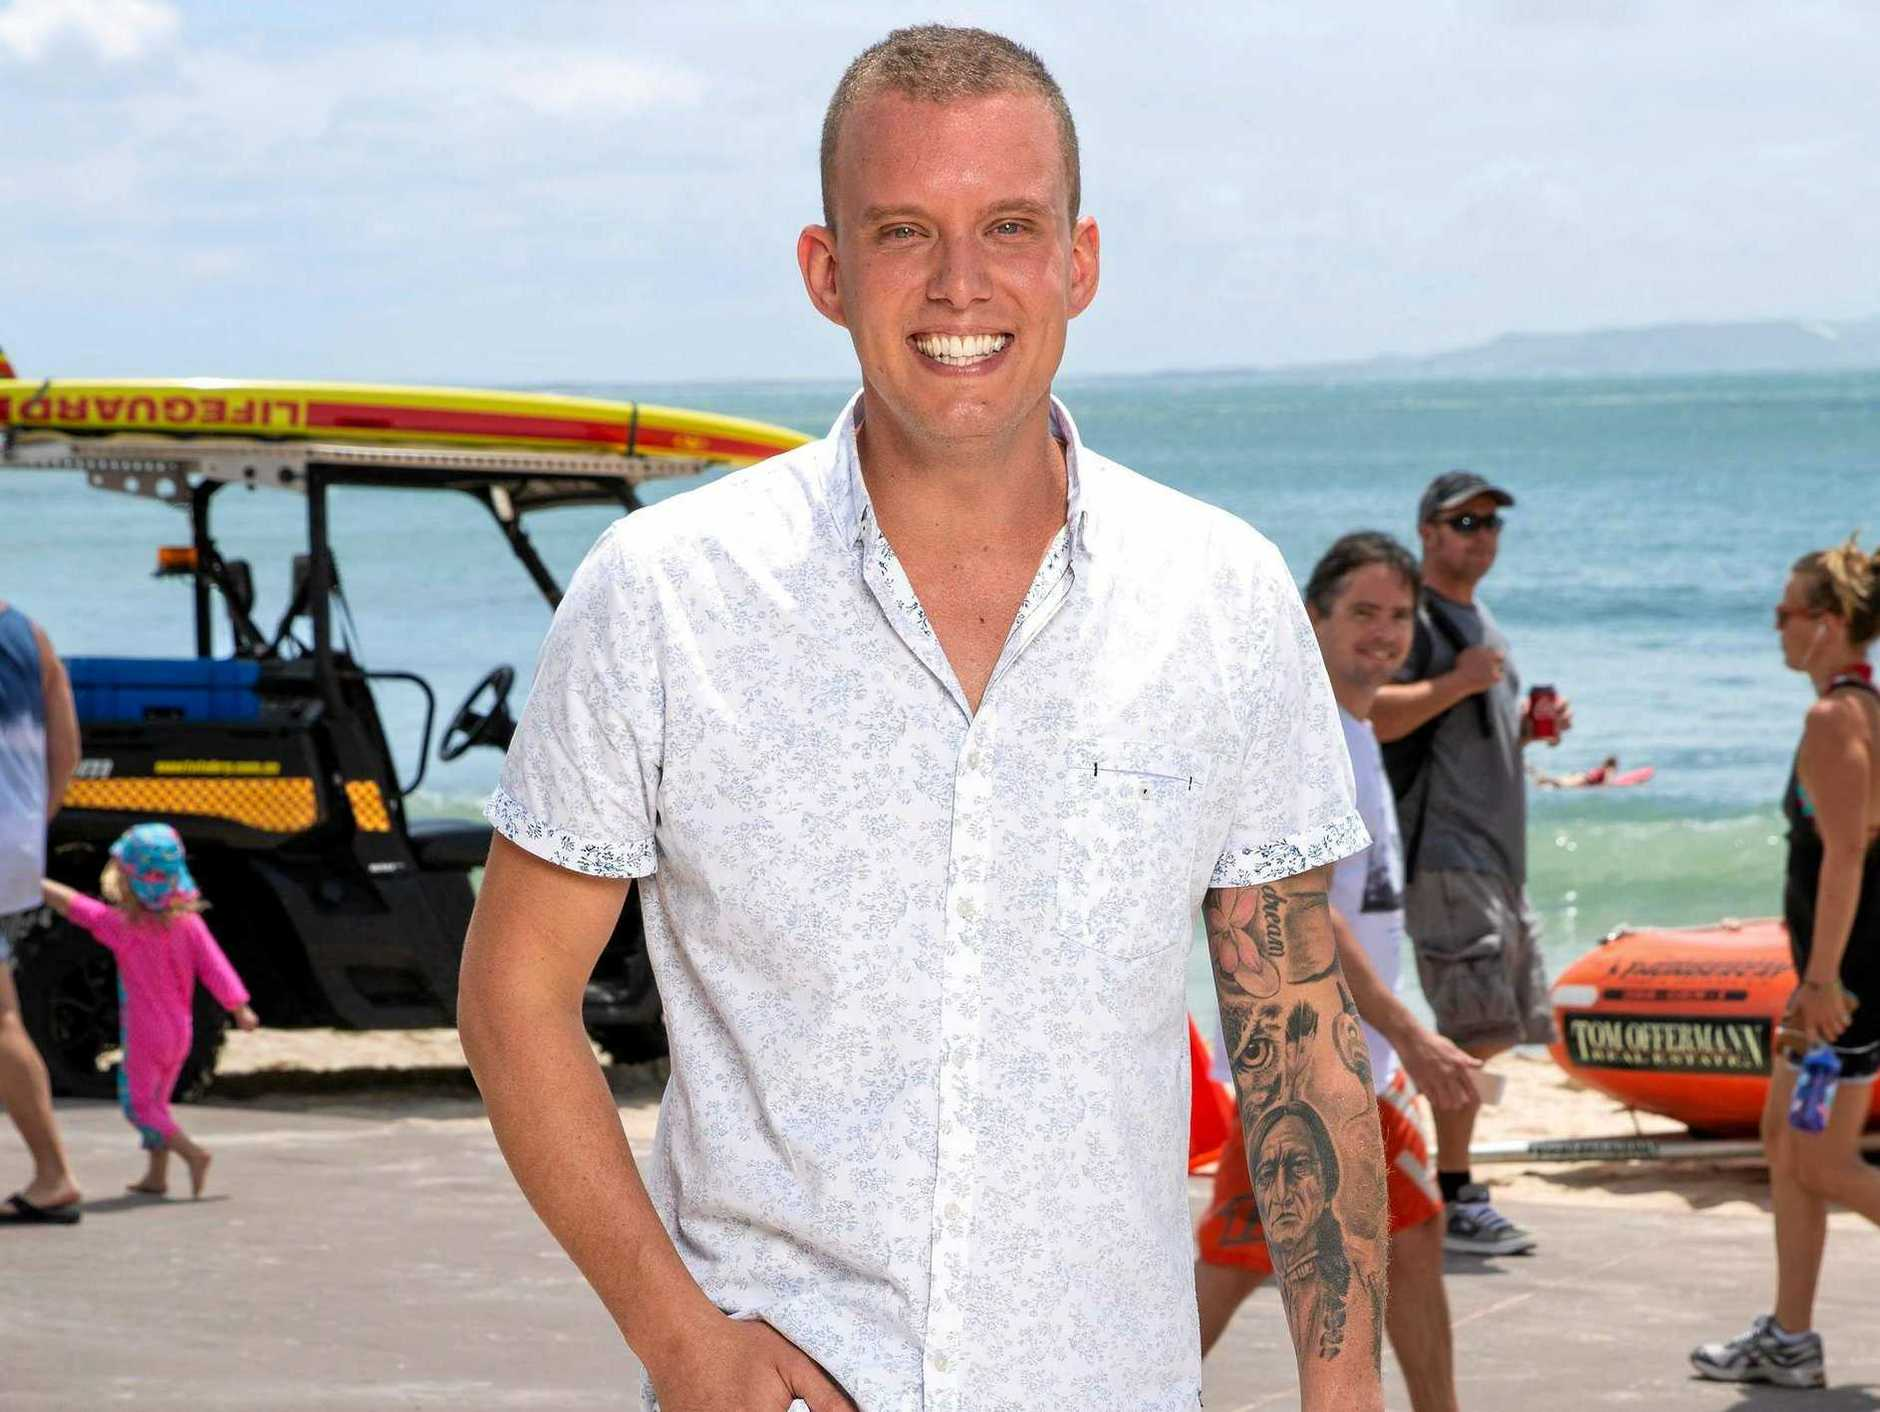 MasterChef mentor and local restaurateur Matt Sinclair at Noosa Beach, where an episode was filmed for the reality TV show's Queensland week. Supplied by Channel 10.